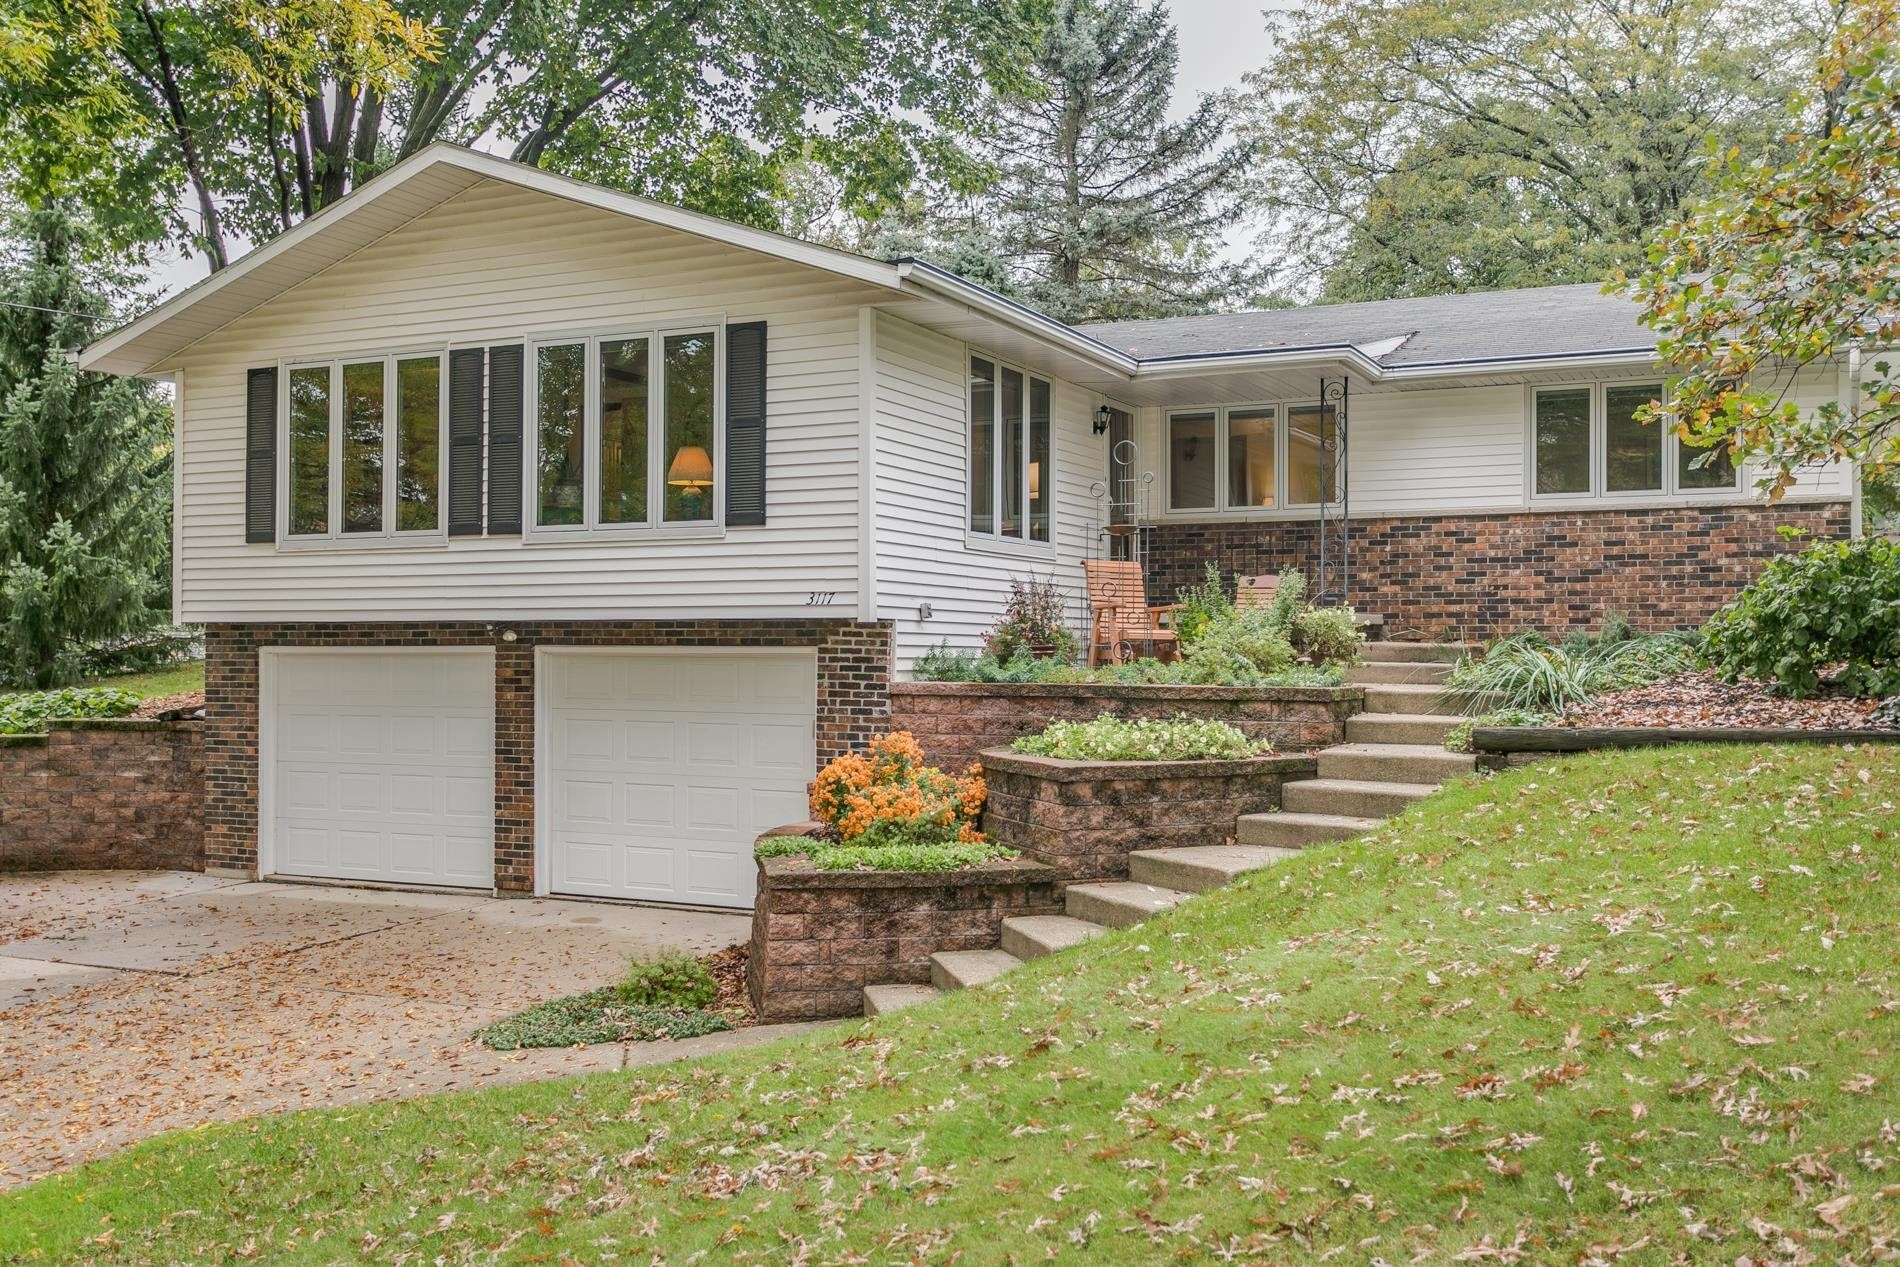 3117 ST GREGORY Drive, Green Bay, WI 54311 - MLS#: 50249664